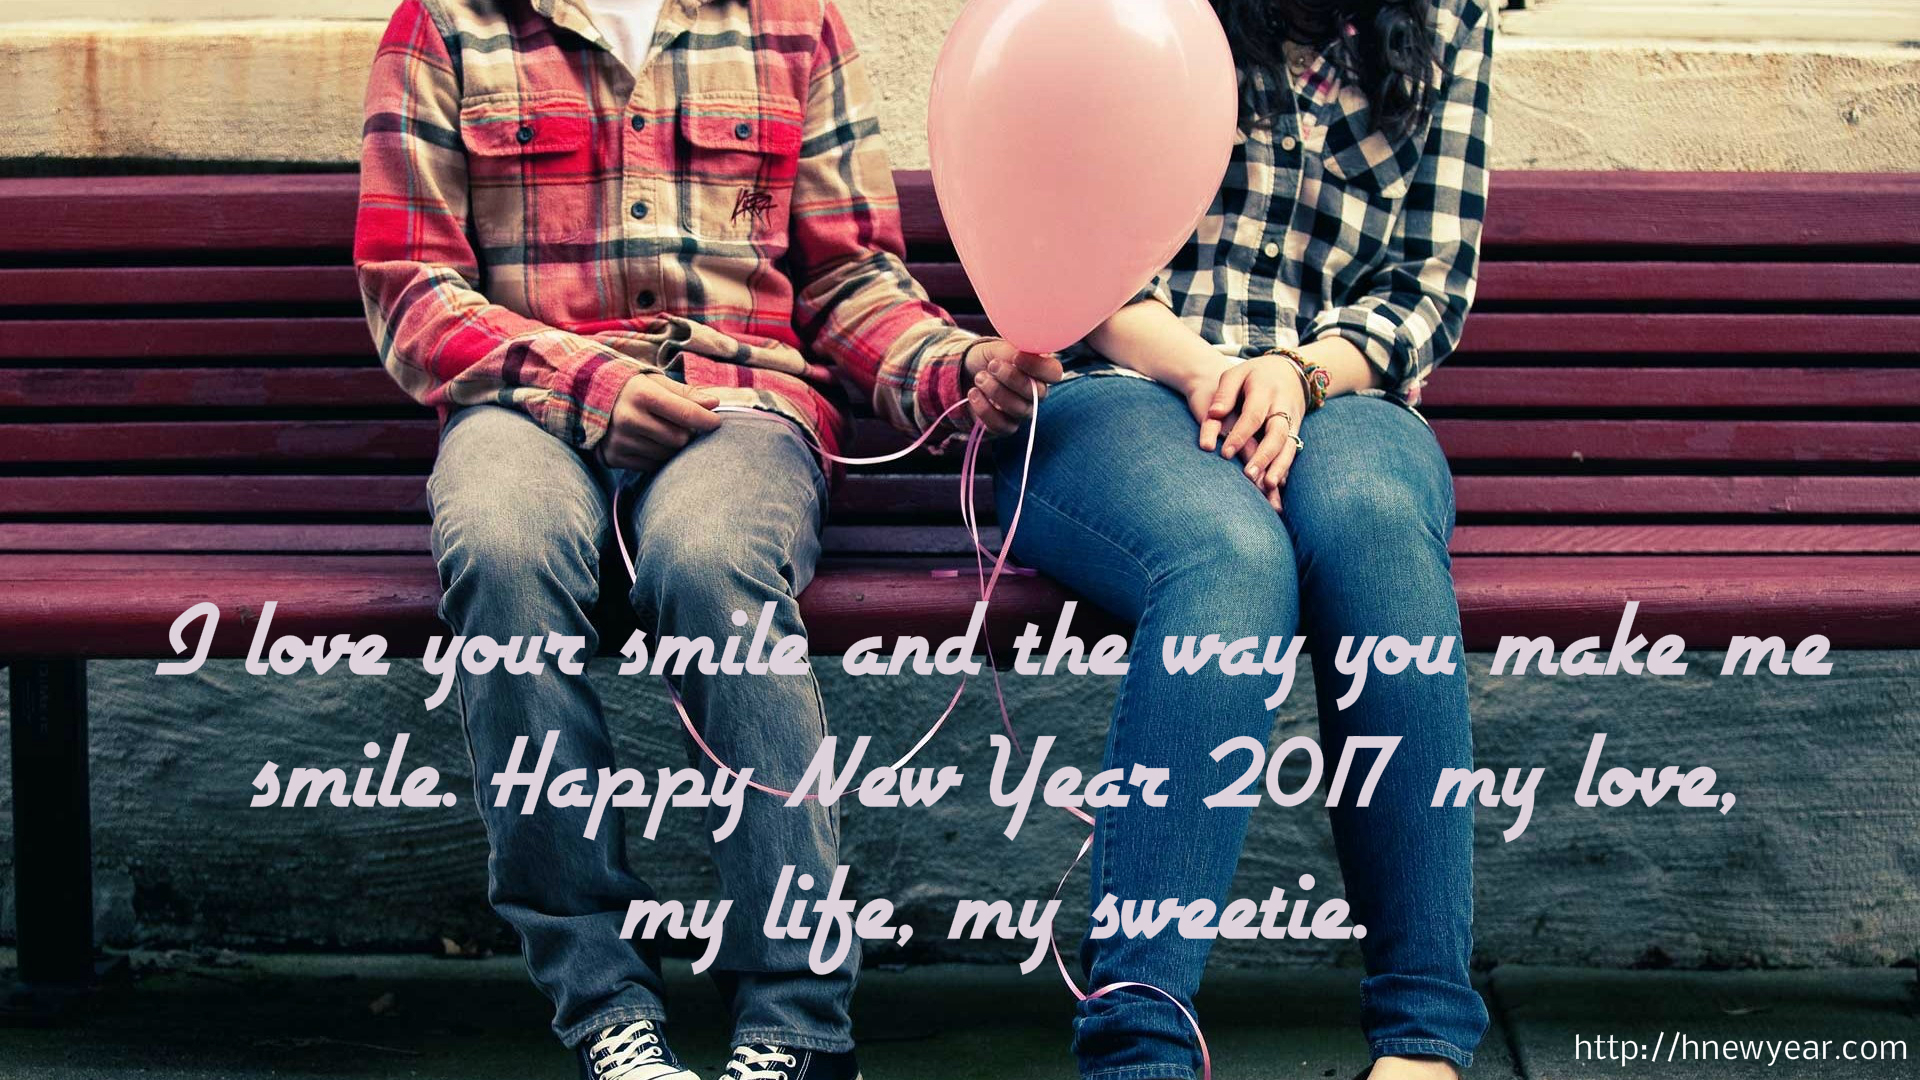 Romantic New Year Wishes for Wife 2017